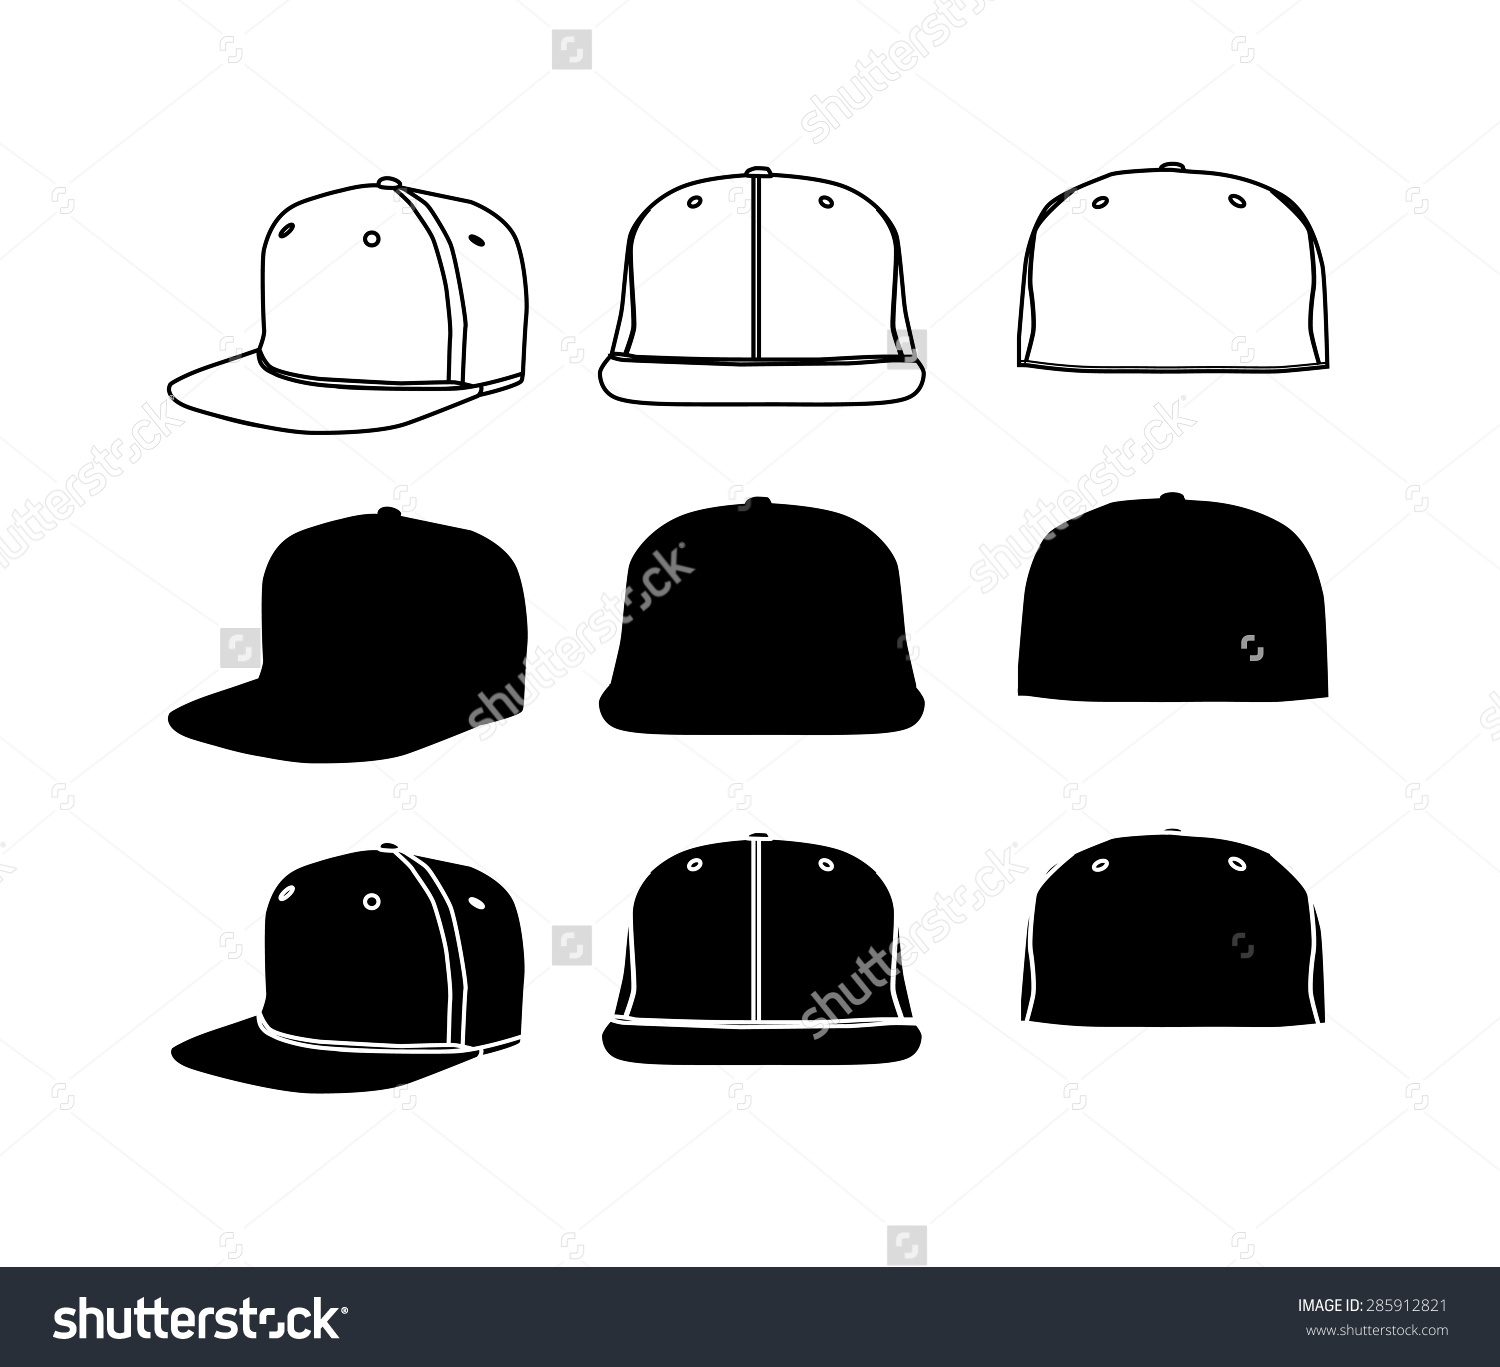 Flat bill hat clipart.